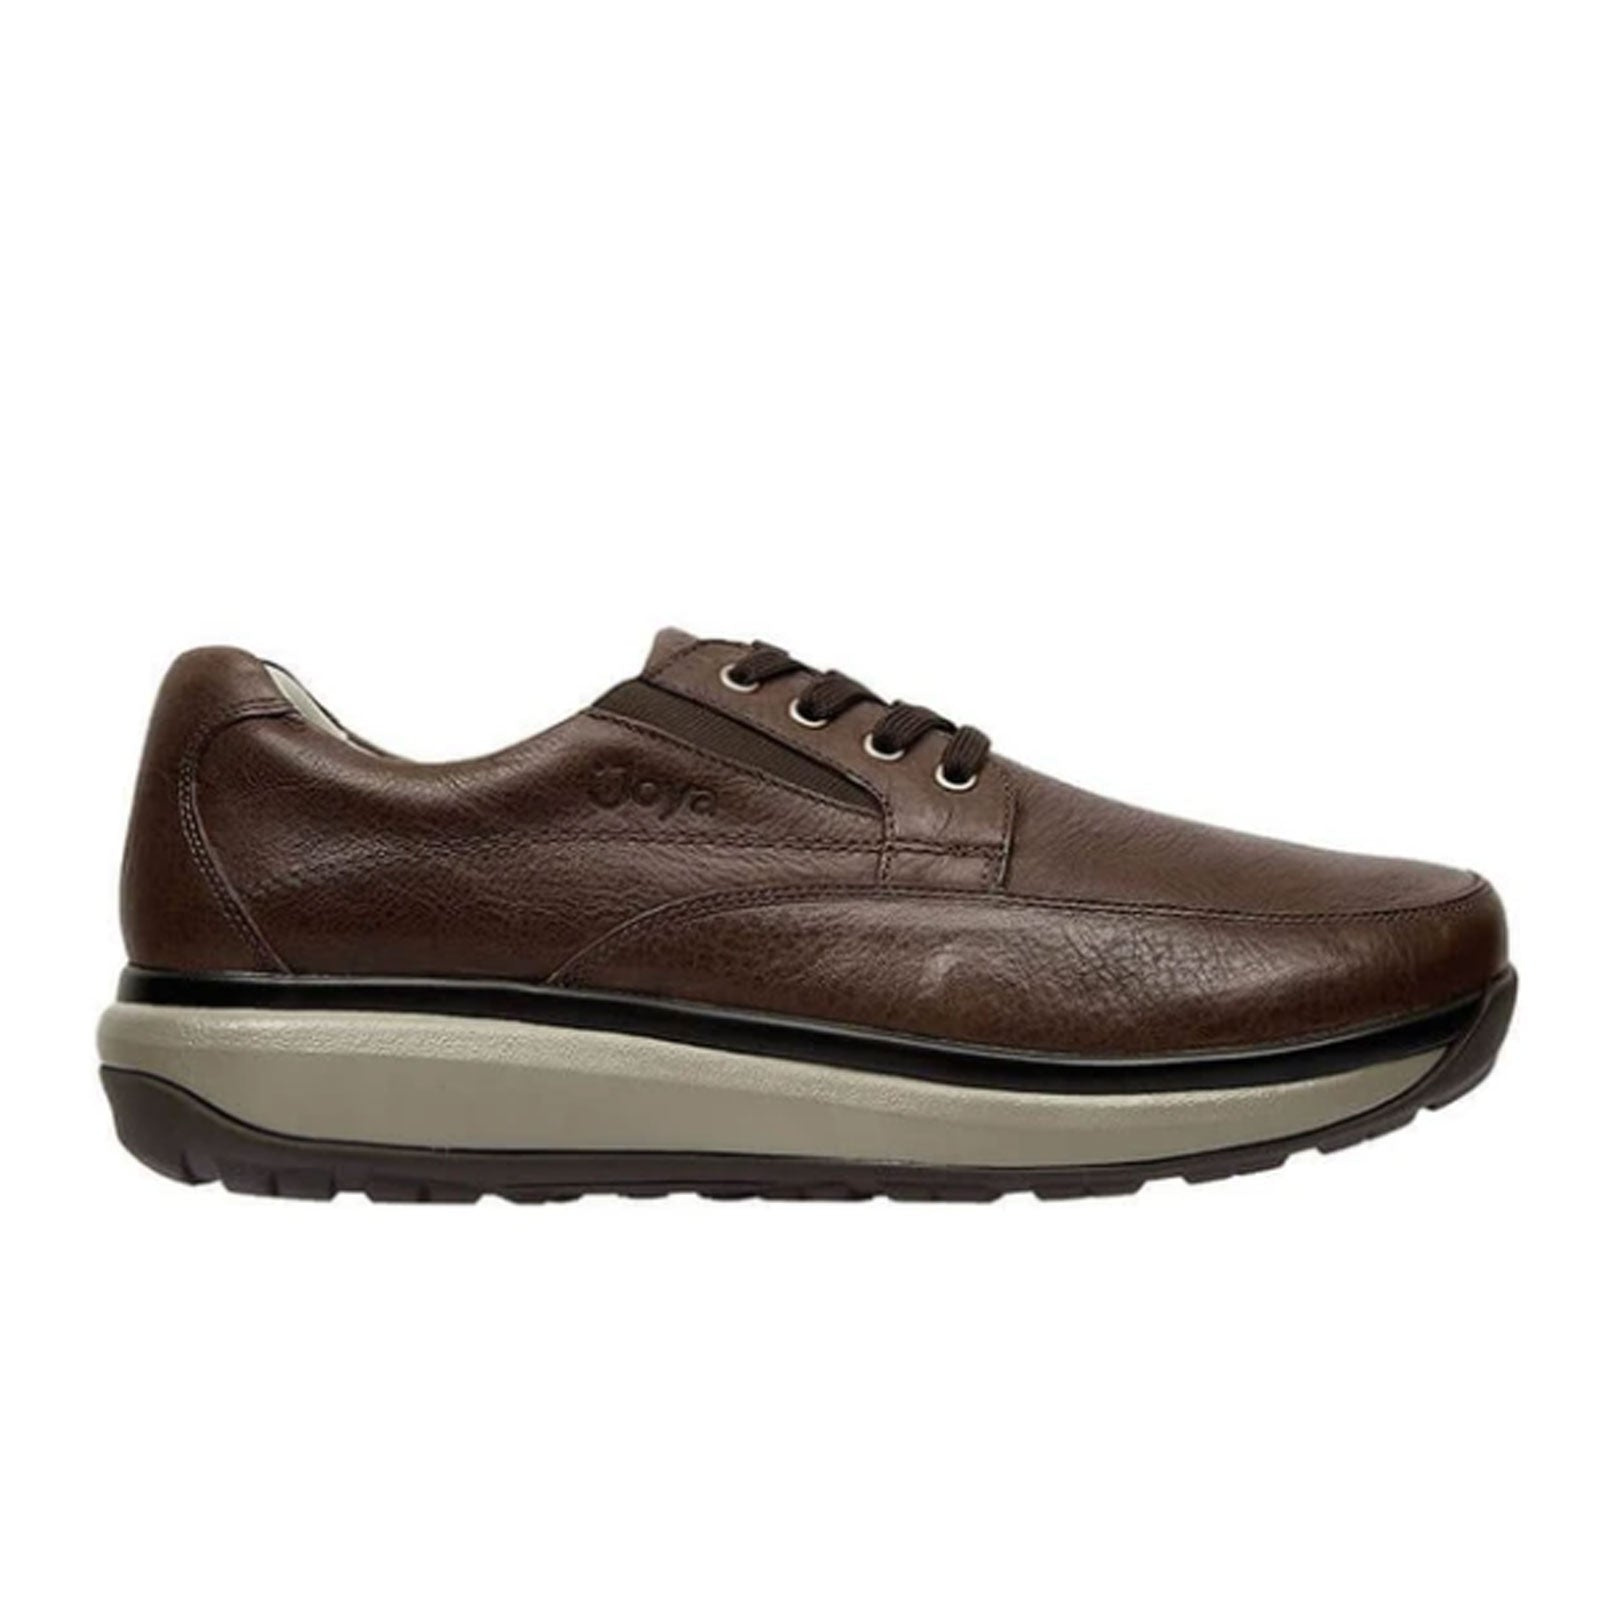 Joya Cruiser II (Men) - Brown Dress/Casual|Lace Ups - The Heel Shoe Fitters